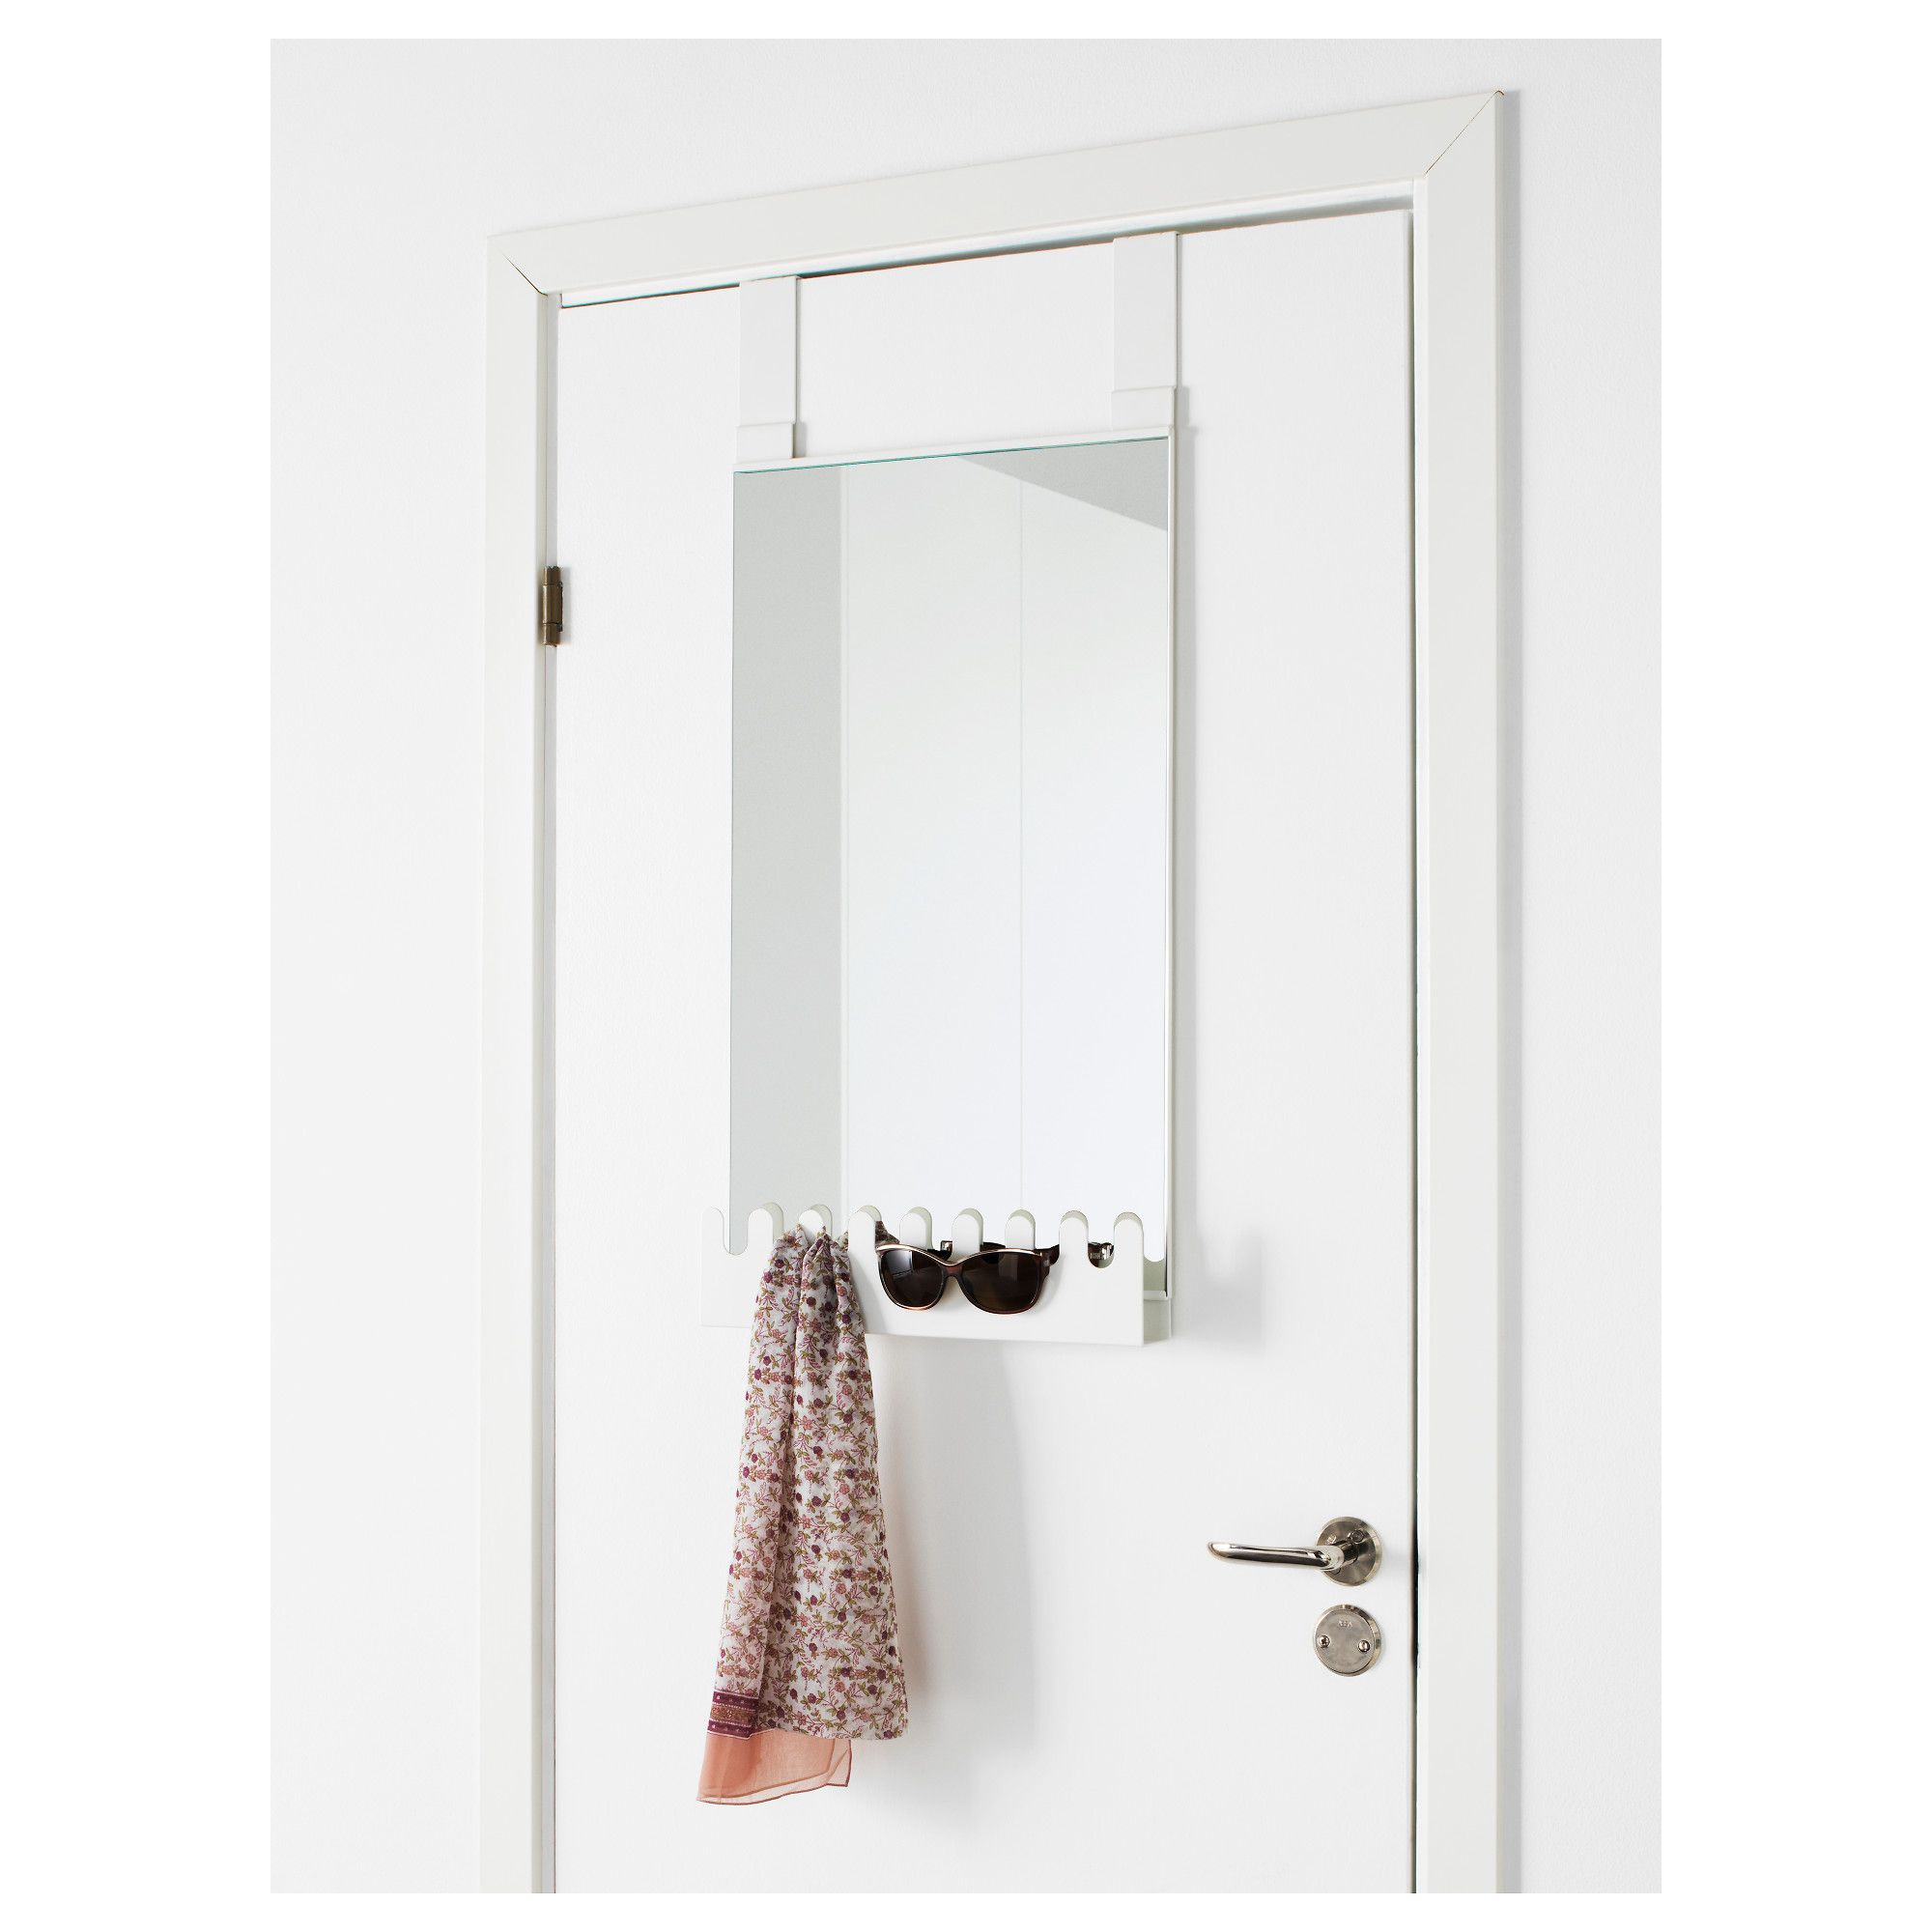 Ikea Garnes Over The Door Mirror Hooks Amp Shelf Out Of Wall Space Don T Worry This Mirror Hangs On Your Door Y Over The Door Mirror Mirror Door Ikea